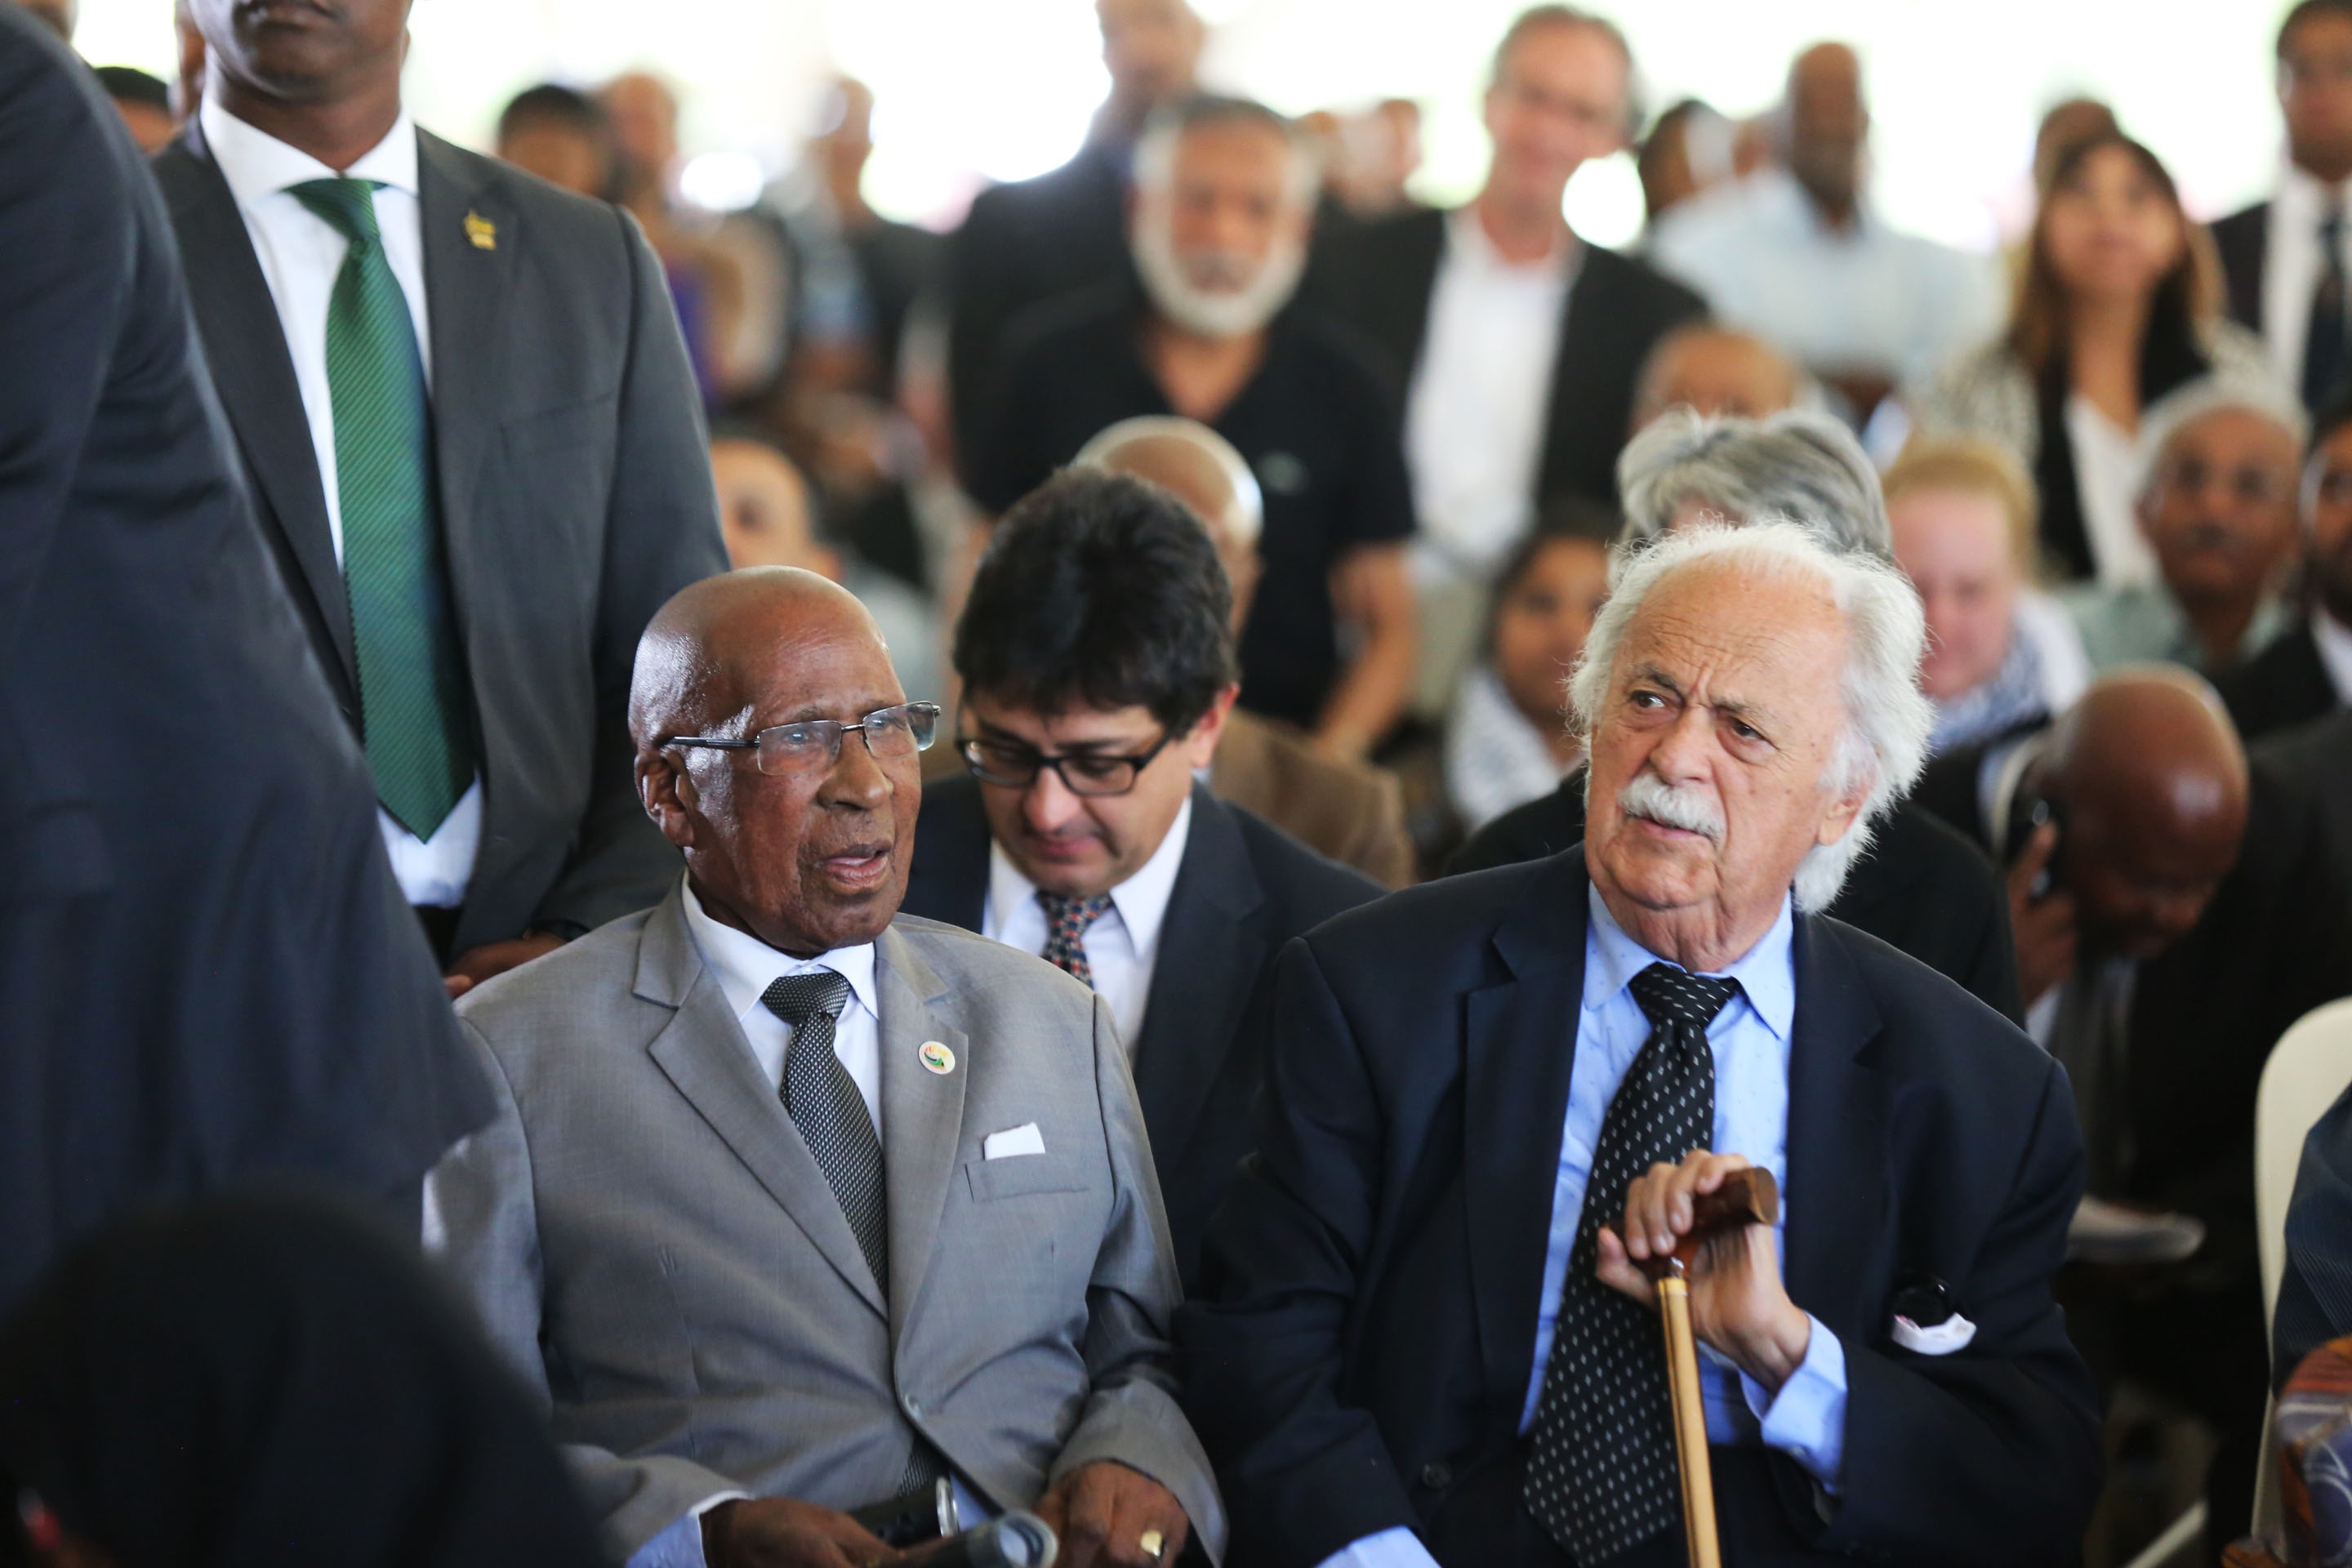 WEB_PHOTO_AHMEDKATHRADAFUNERAL4_290317